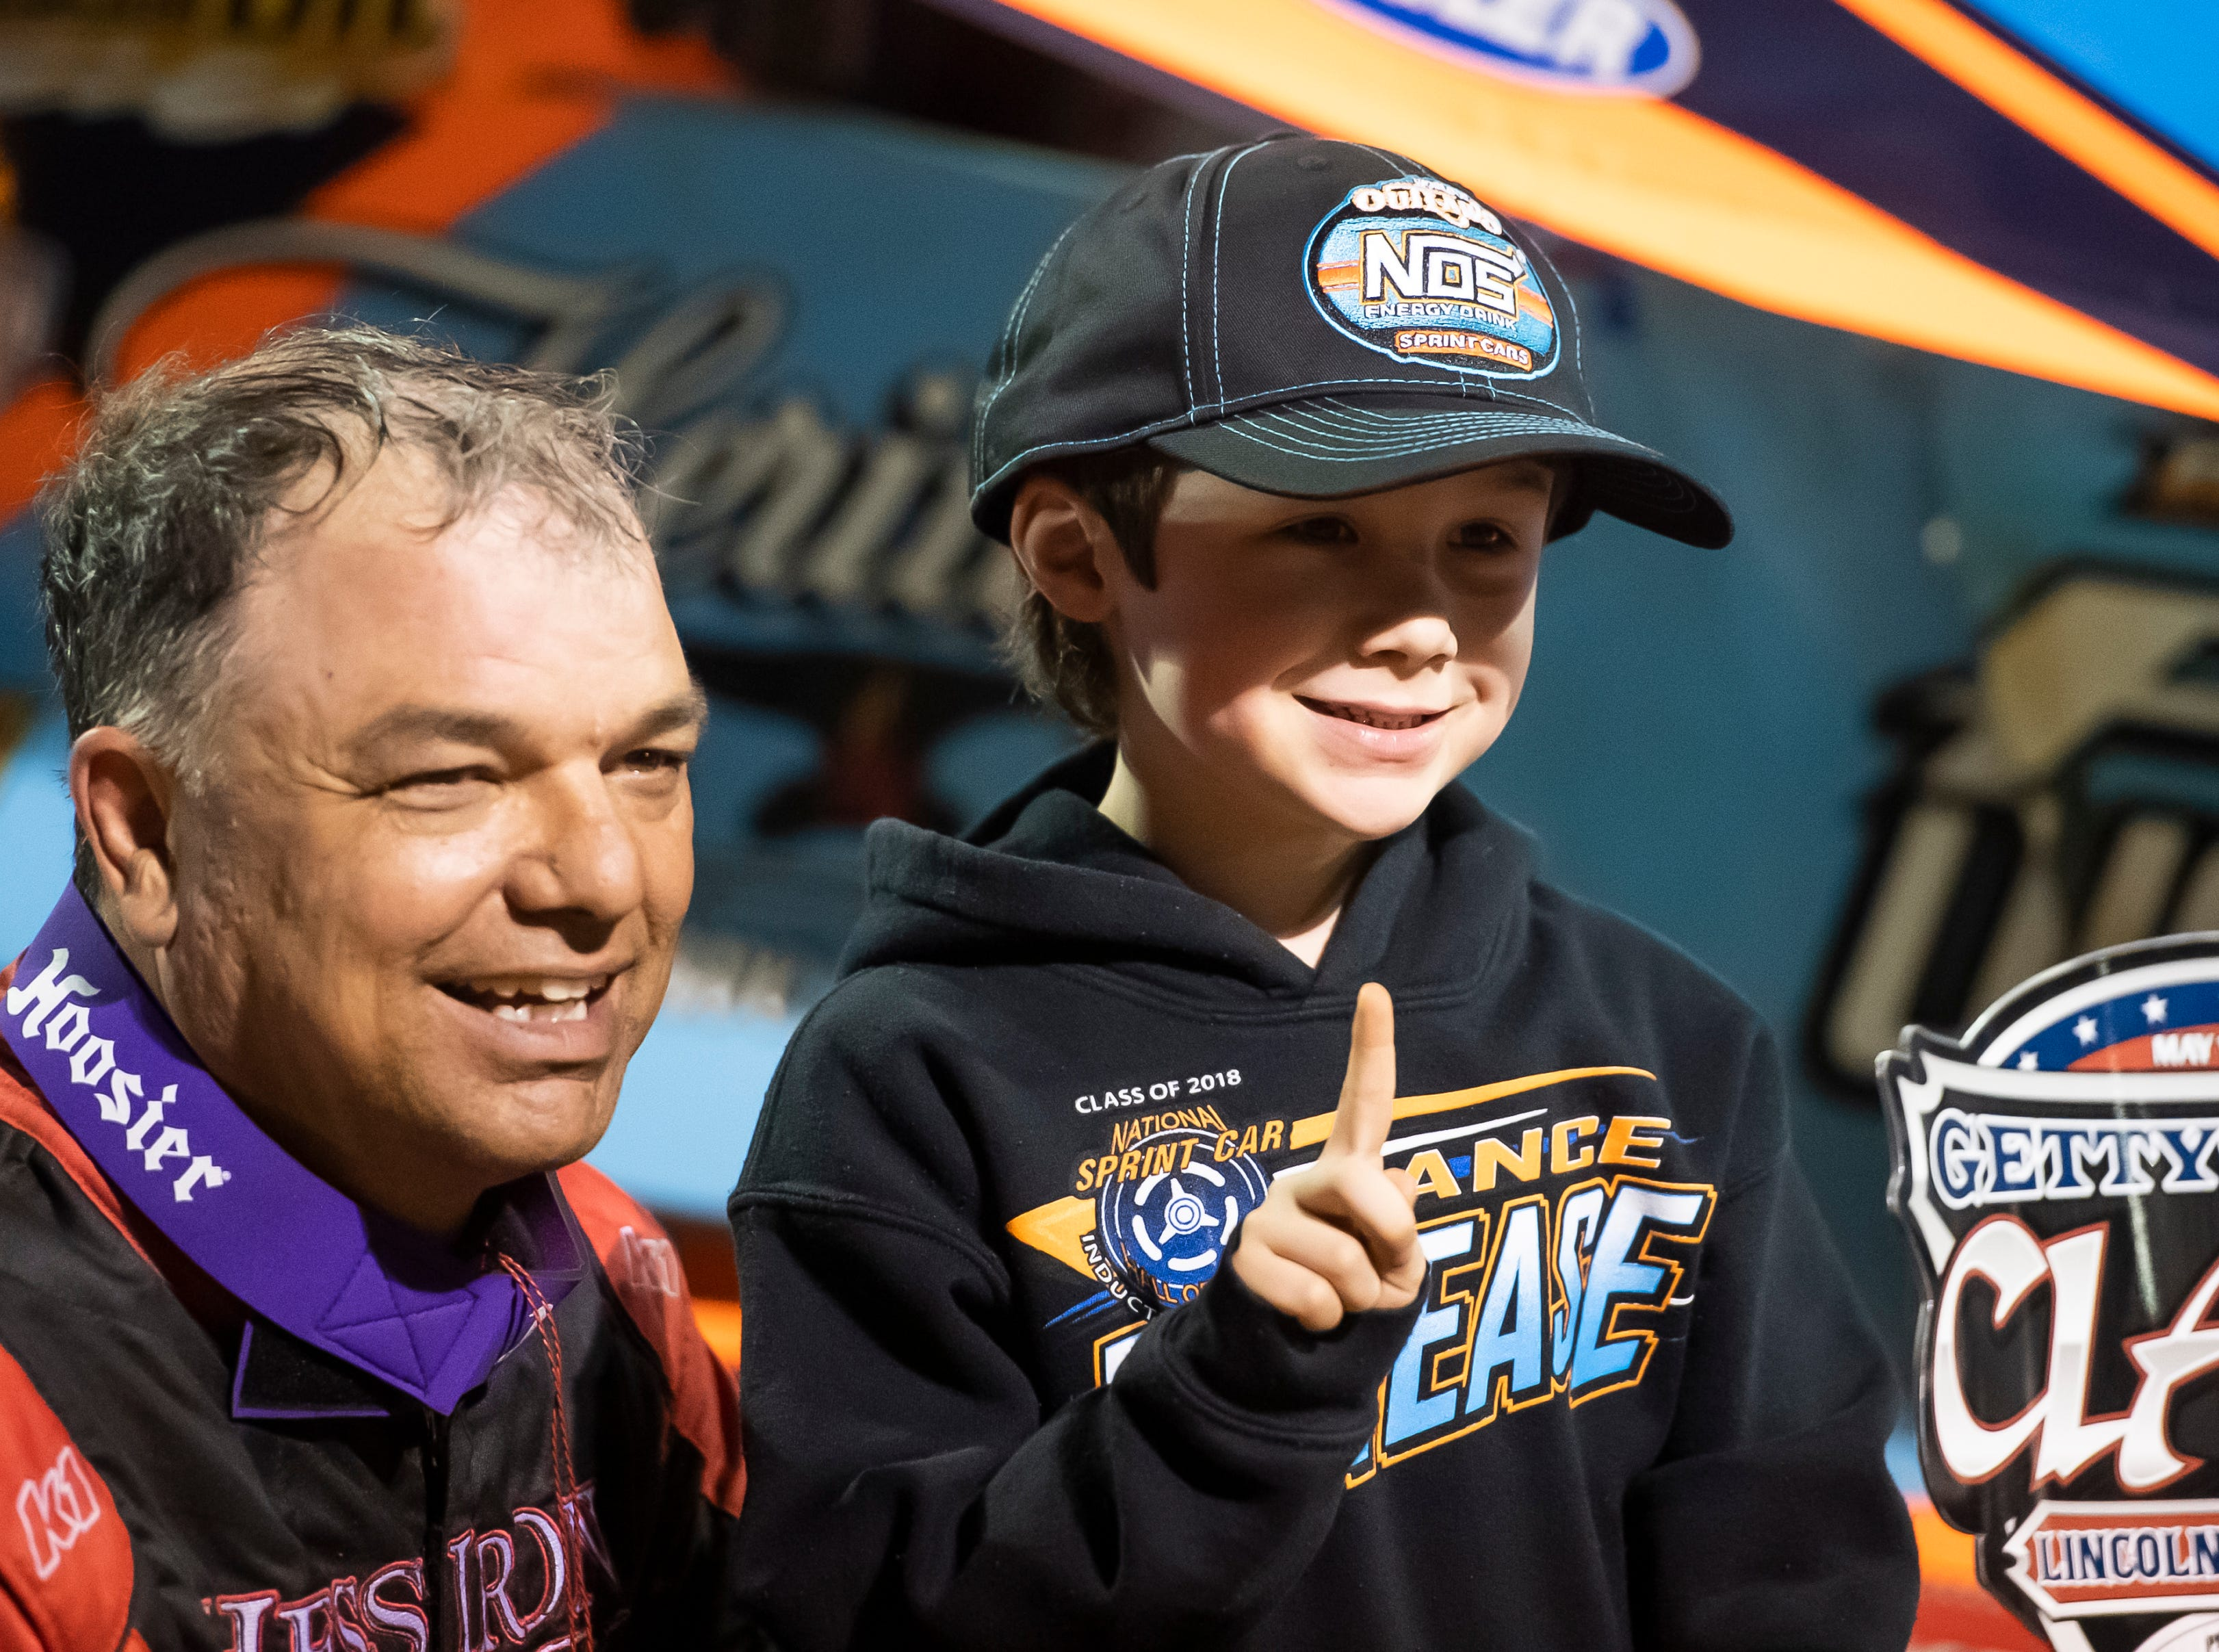 Hunter Smith, 6, of Waynesboro, gets a photo with Lance Dewease after the World of Outlaws Gettysburg Clash at Lincoln Speedway in Abbottstown on Wednesday, May 15, 2019.